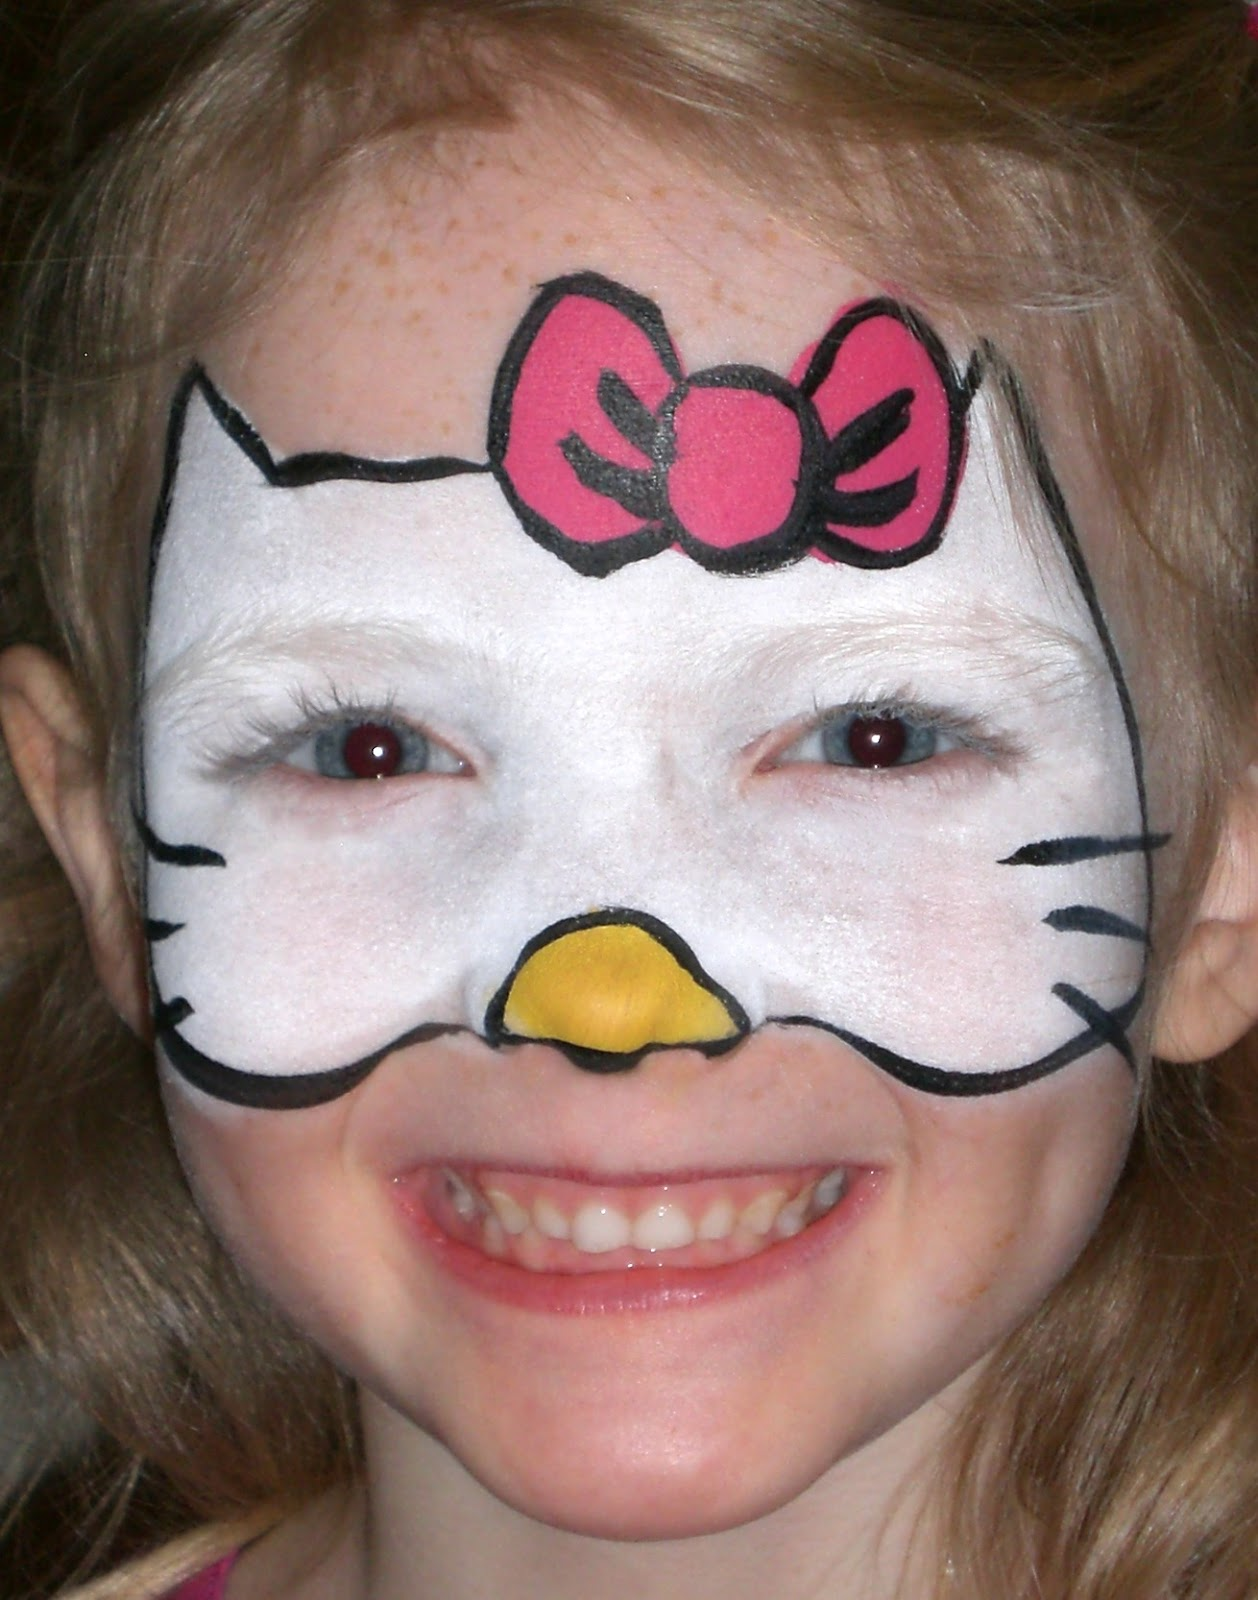 Cute face paint art project ideas and craft ideas cute face paint solutioingenieria Gallery